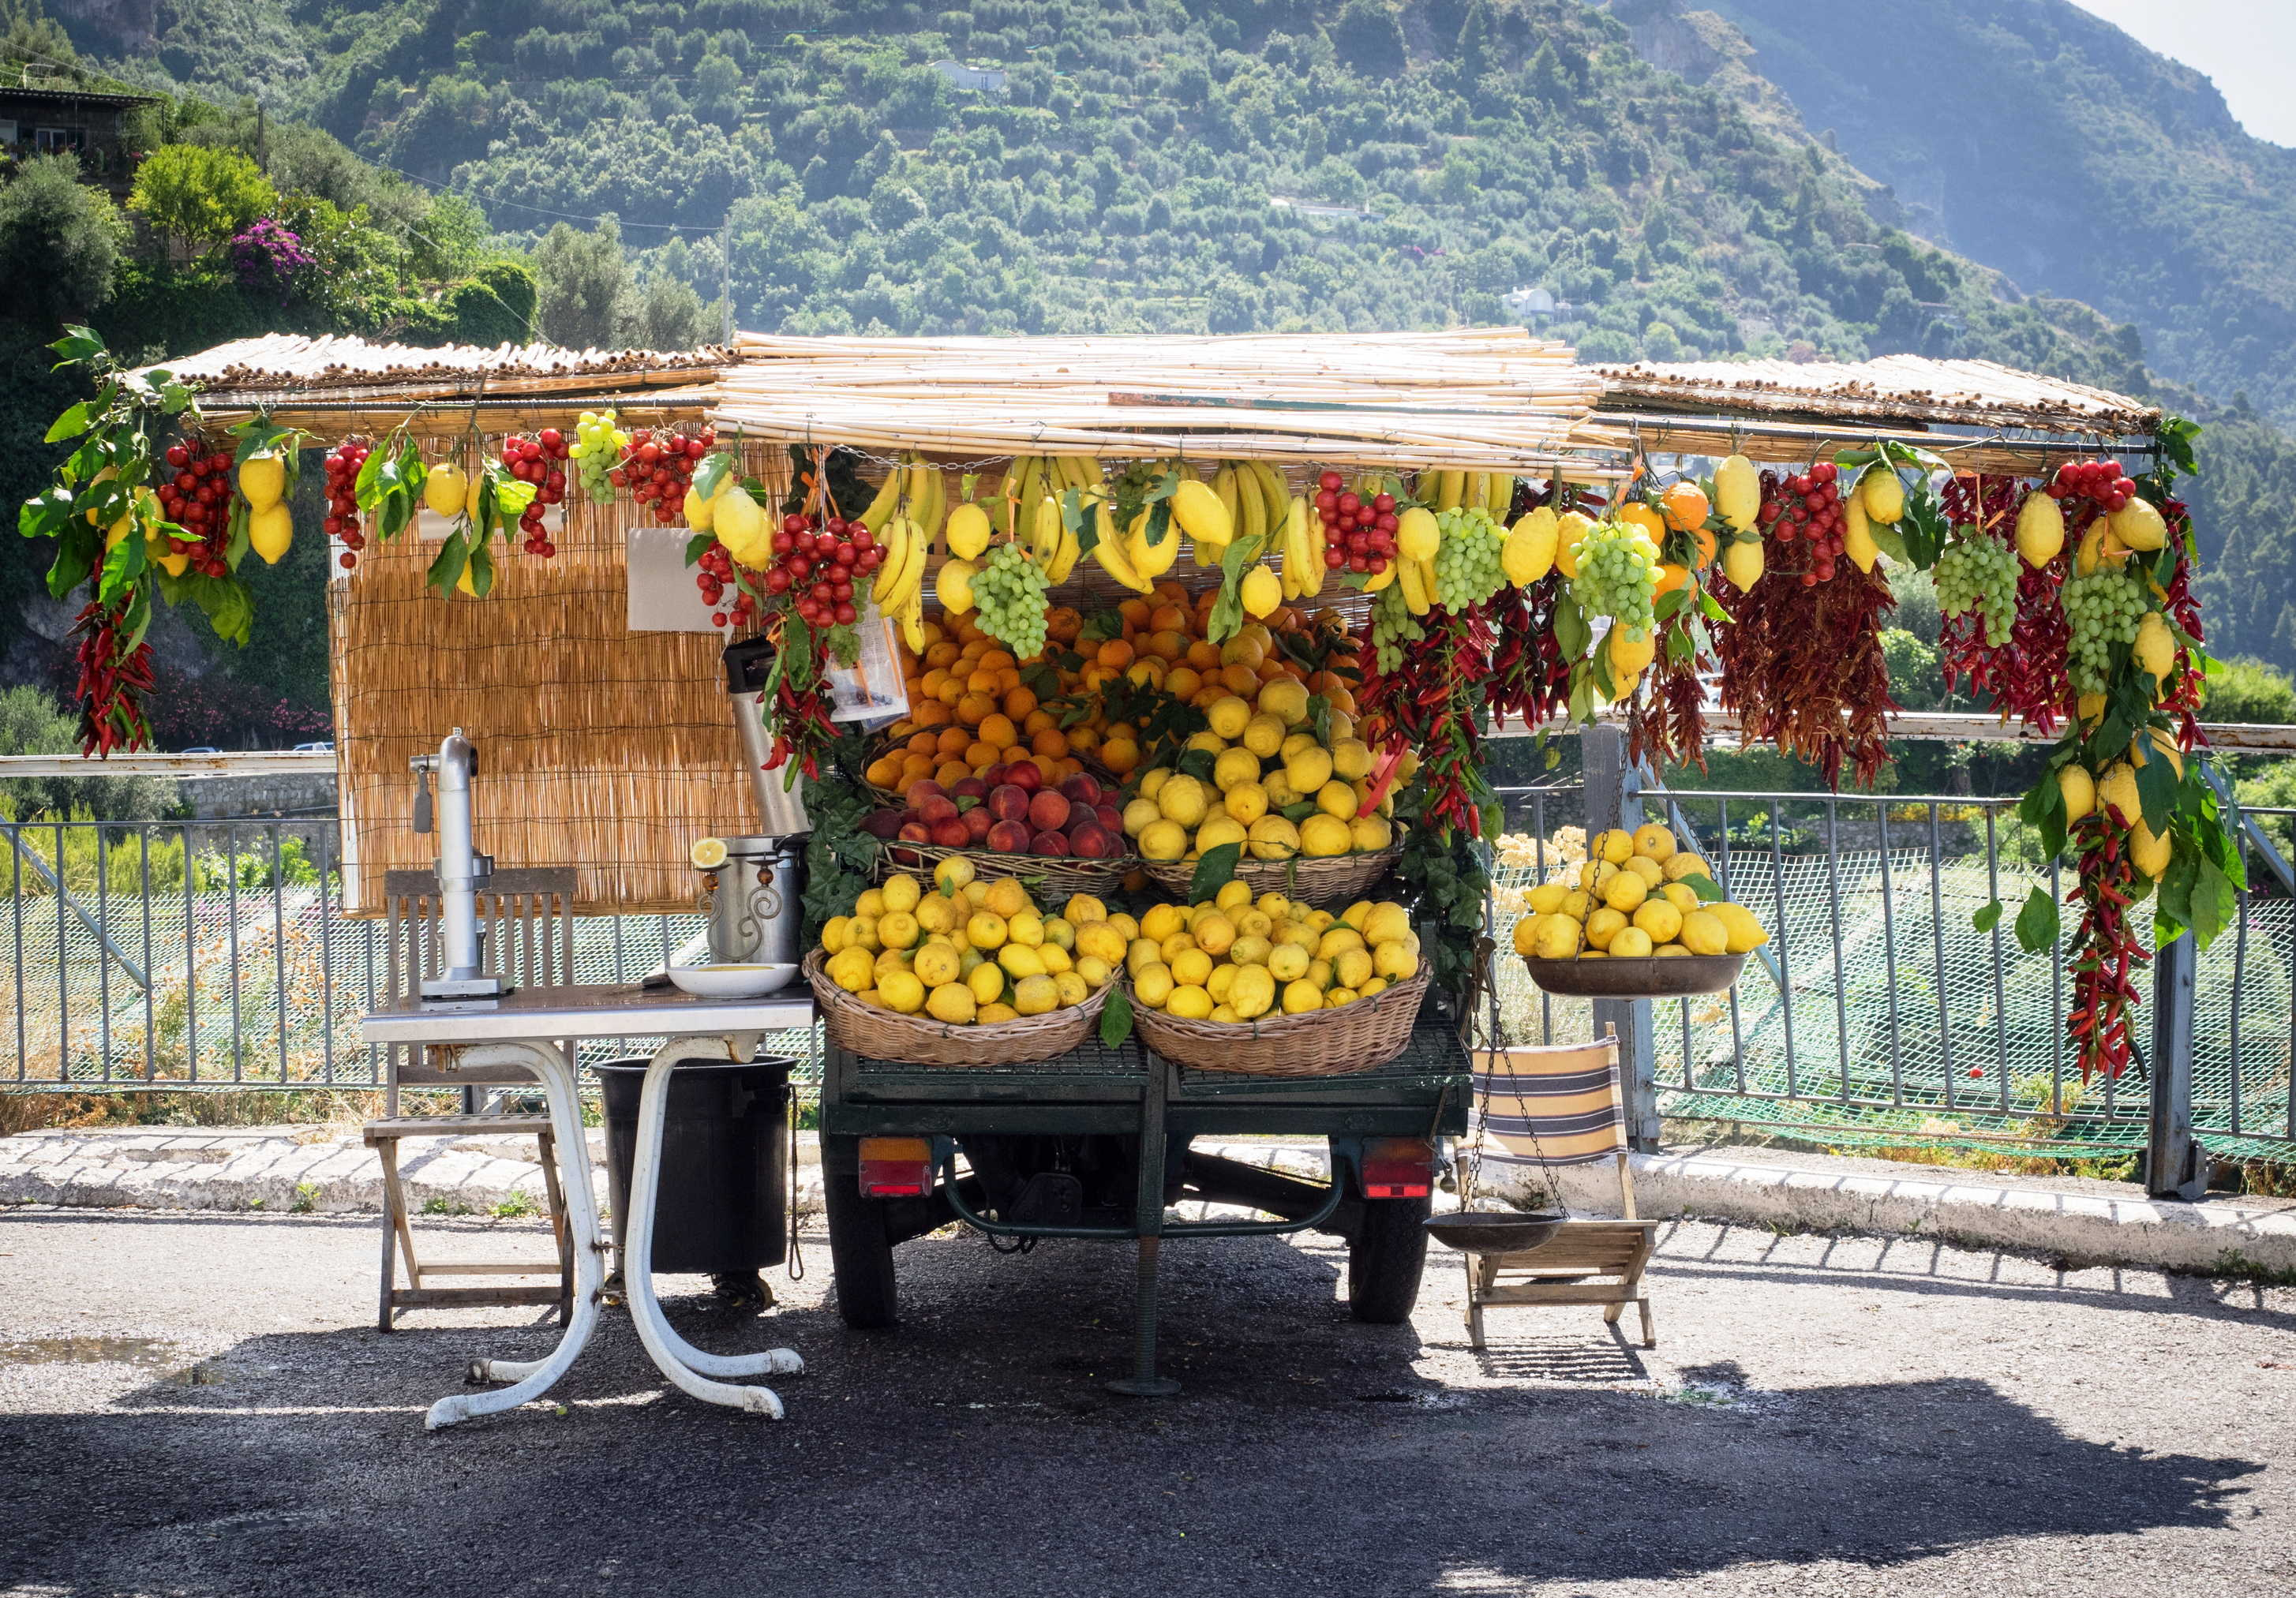 Lemon seller on the Amalfi Coast